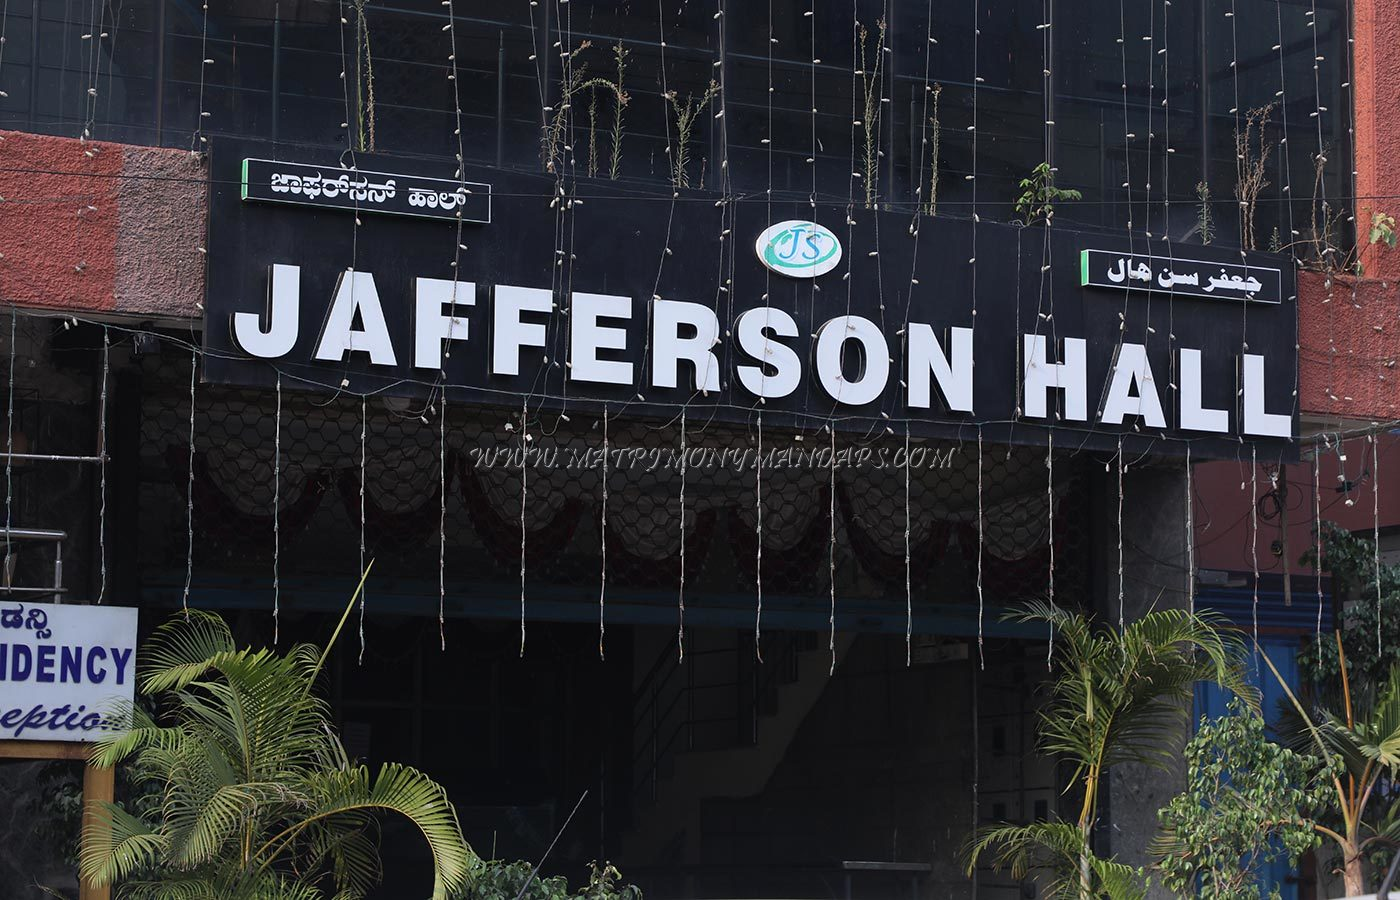 Find the availability of the Jafferson Hall 1 in Lal Bagh Road, Bangalore and avail special offers